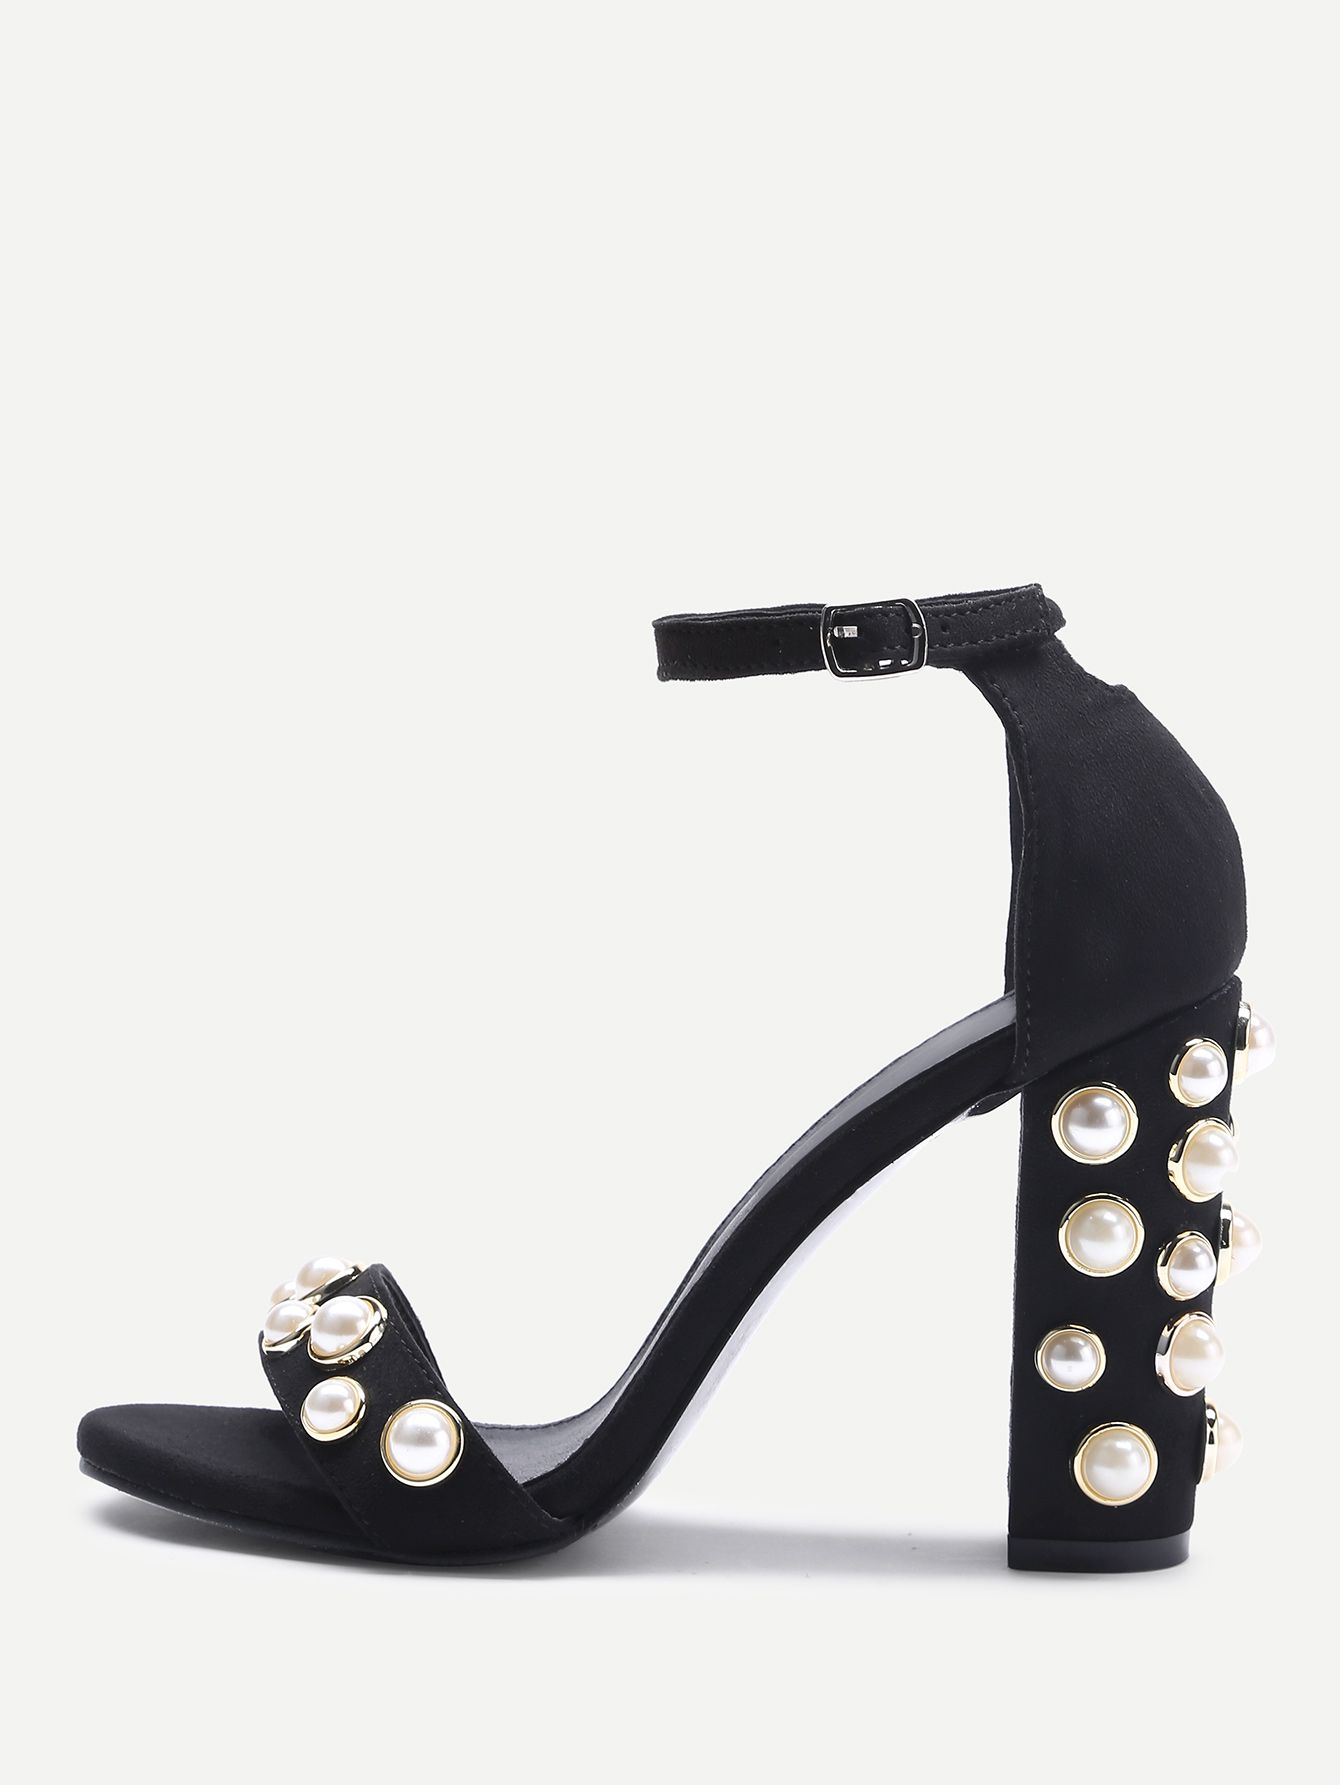 717e39d521e Shop Faux Pearl Decorated Two Part Block Heel Sandals online. SheIn offers  Faux Pearl Decorated Two Part Block Heel Sandals   more to fit your  fashionable ...